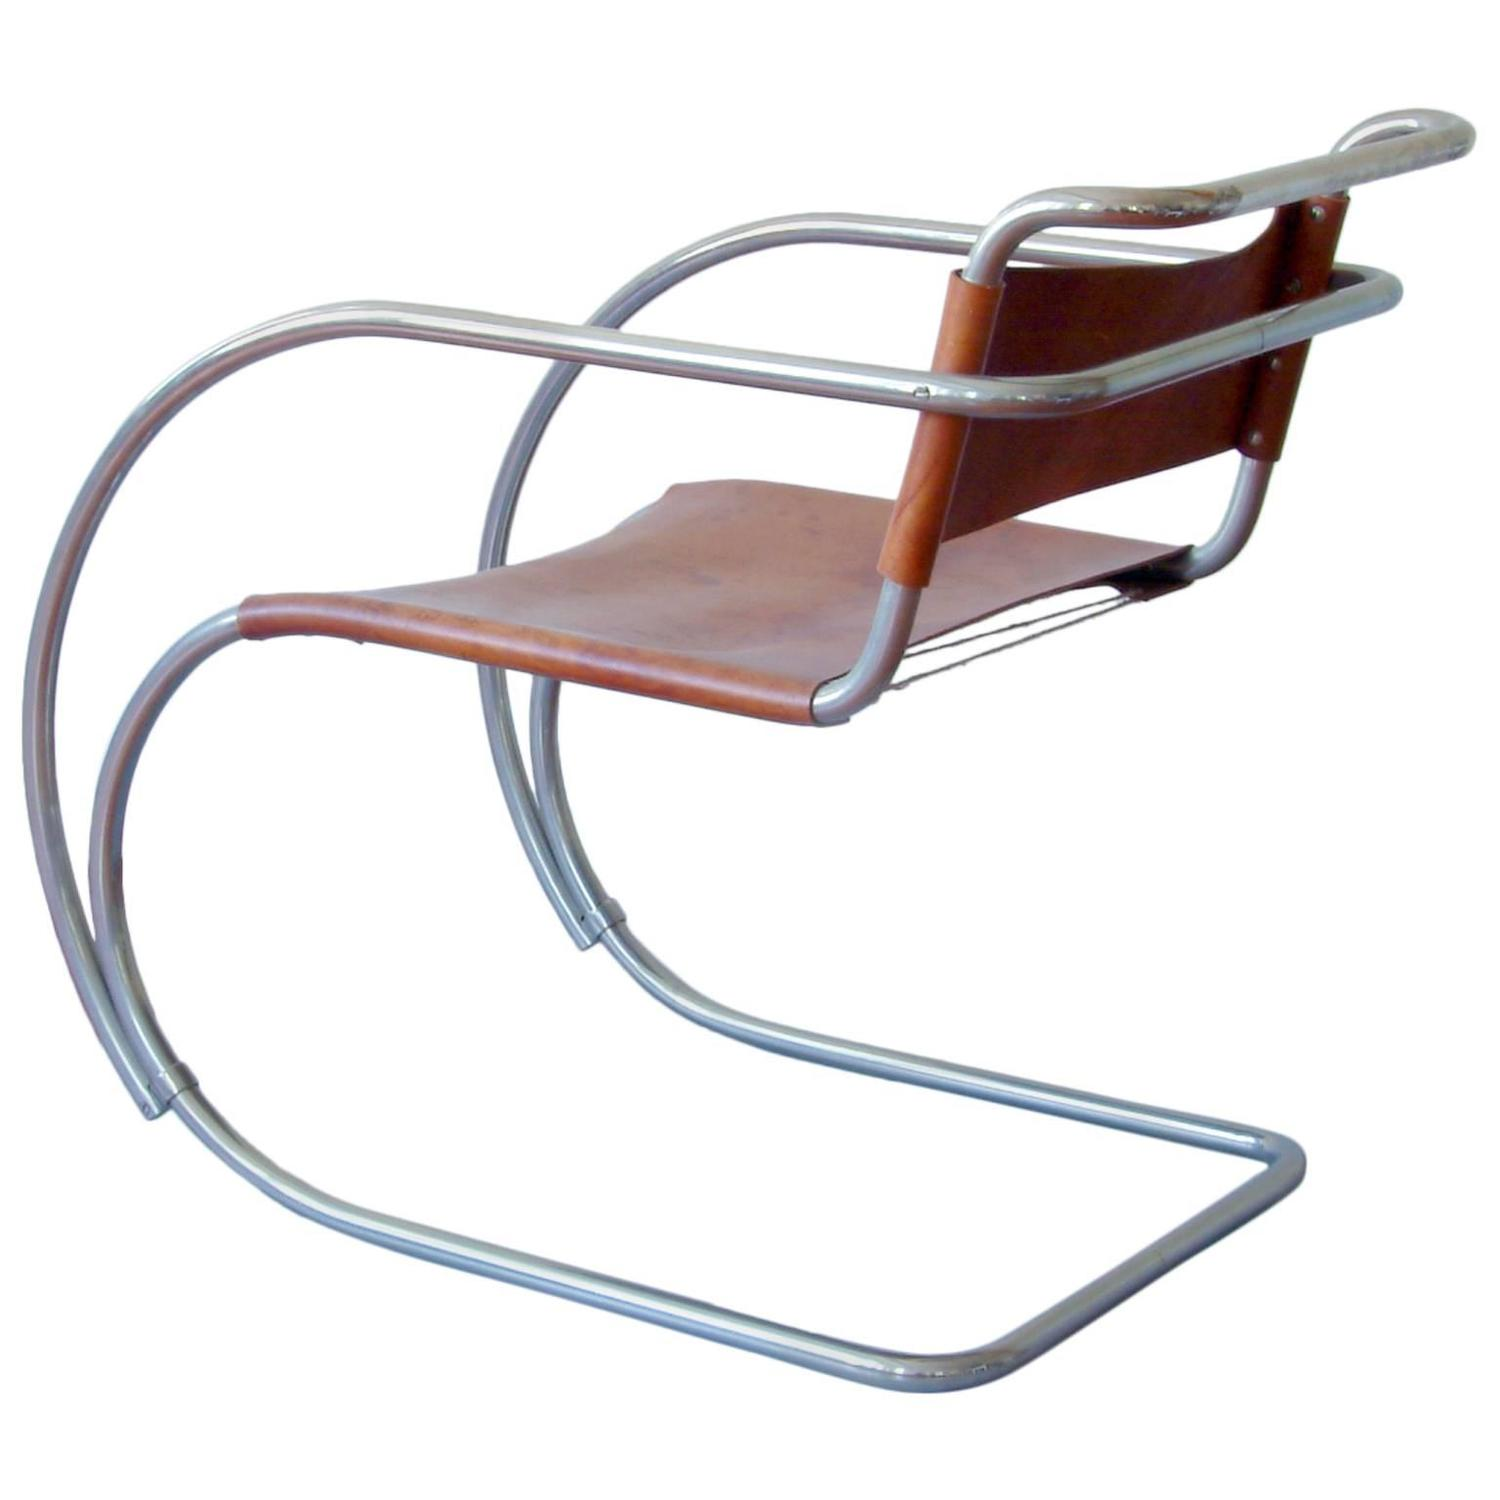 rare tubular steel cantilever chair mr 20 by ludwig mies. Black Bedroom Furniture Sets. Home Design Ideas